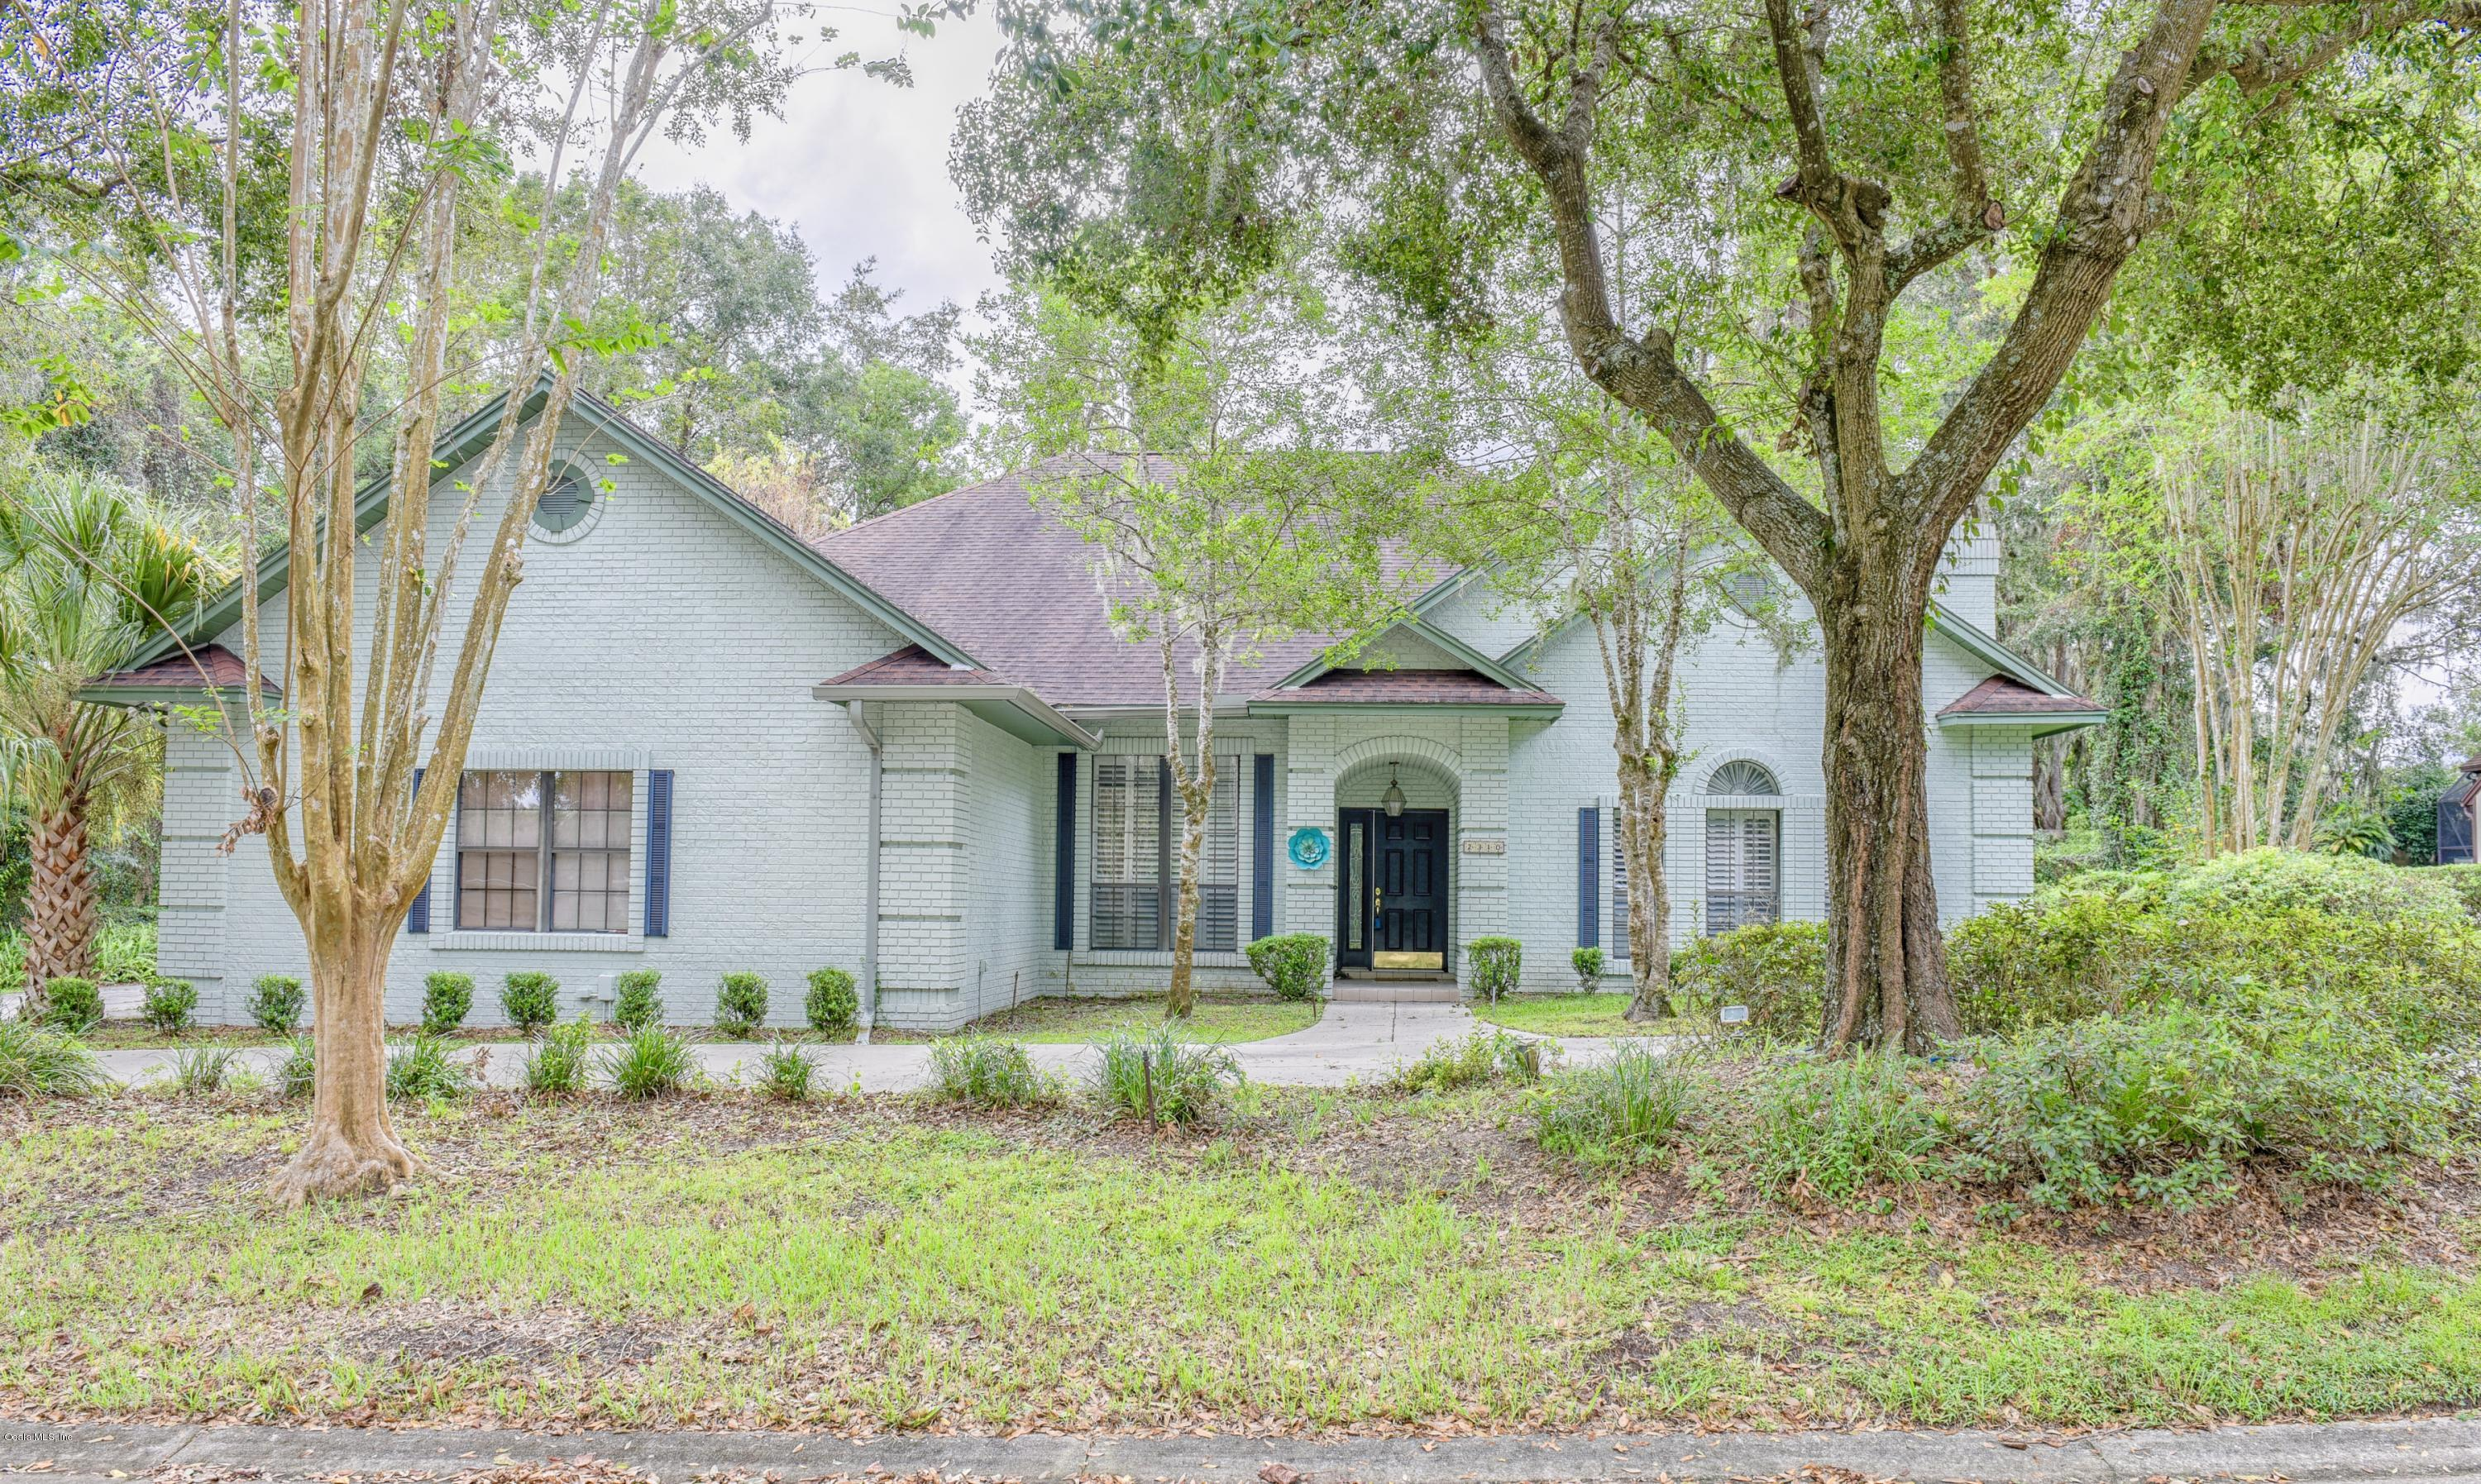 2310 SE LAUREL RUN DRIVE, OCALA, FL 34471